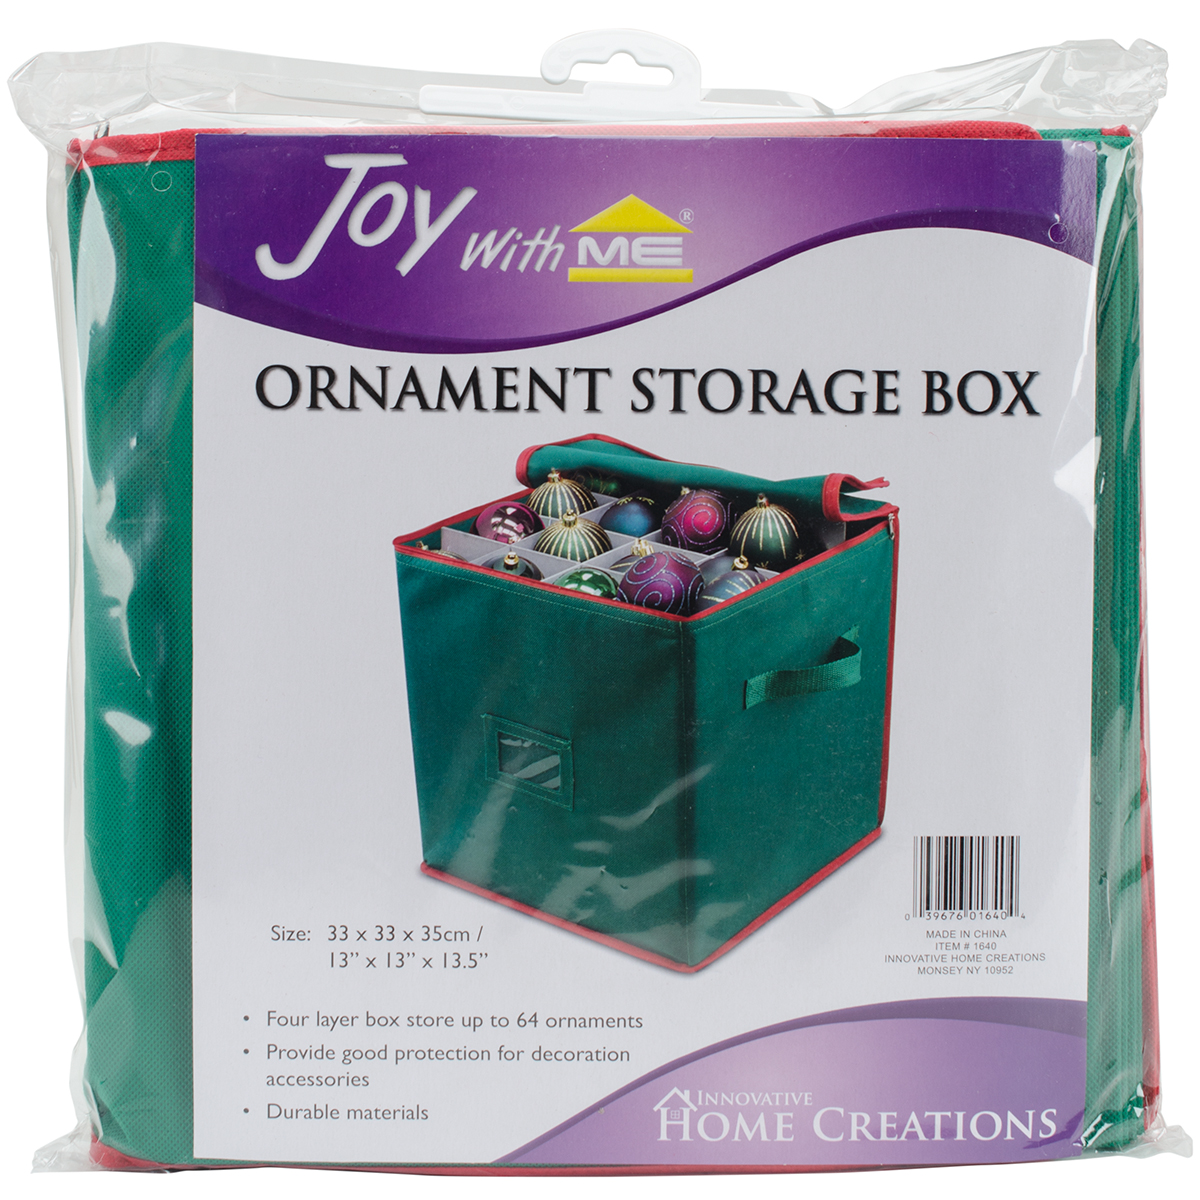 "Ornament Storage Box, 13.5"" x 13"" x 13"""